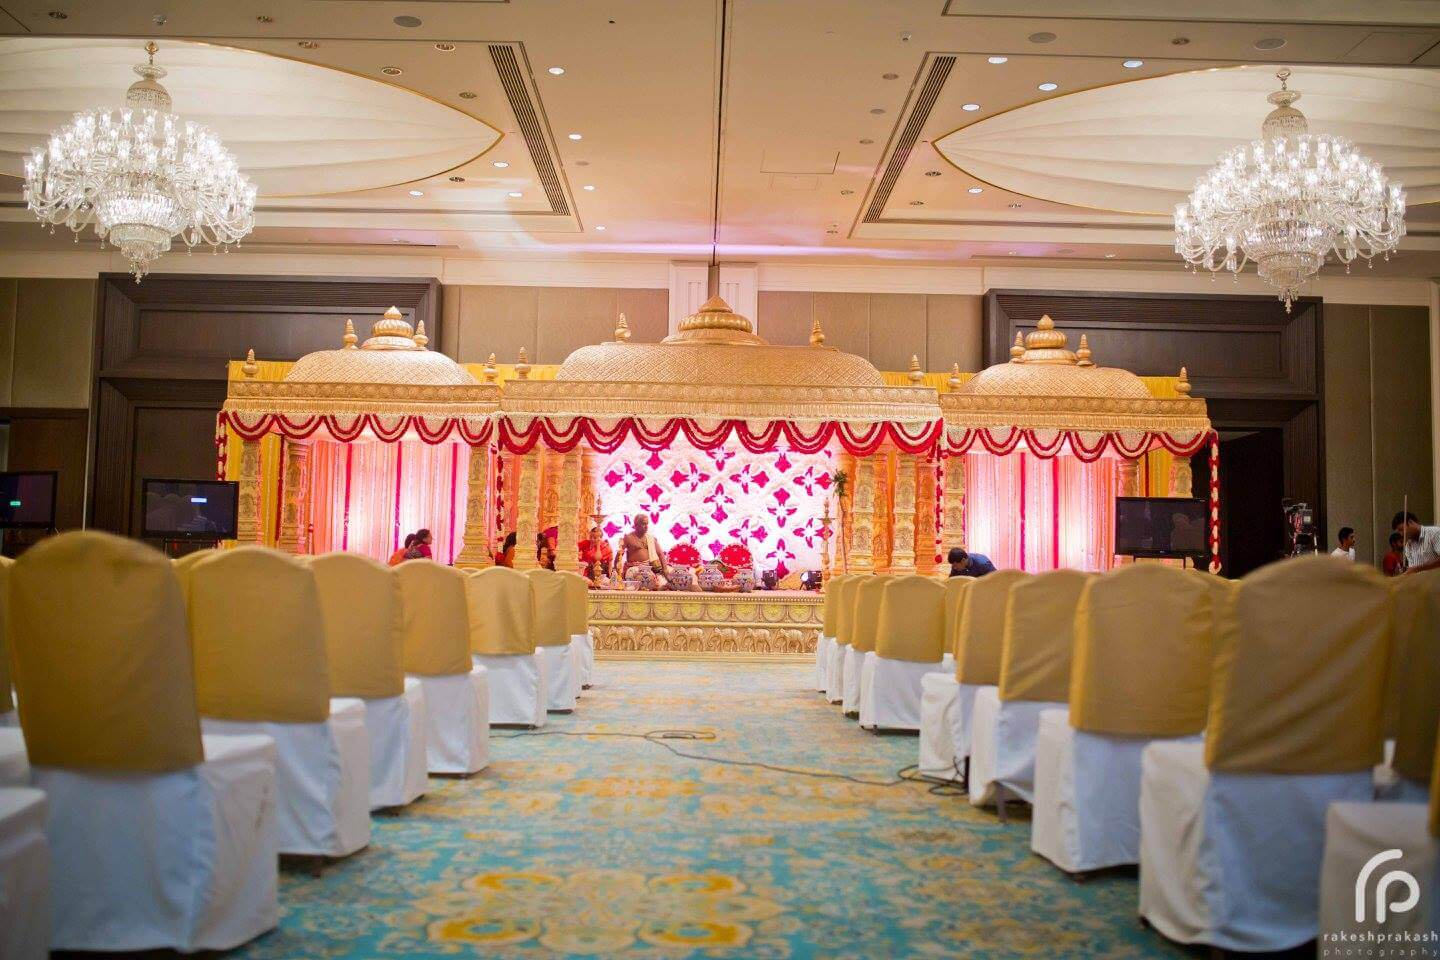 The Dream Theme Wedding planners - Chennai